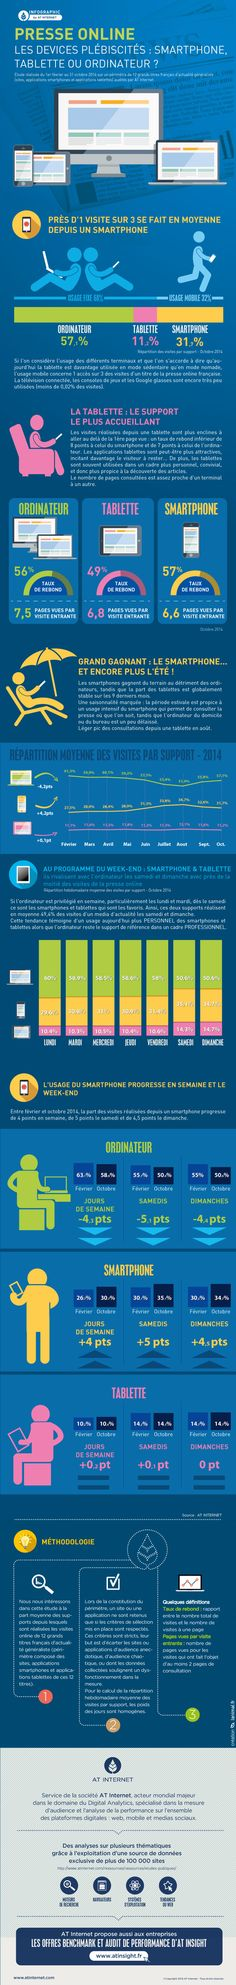 Devices_press_online_2014